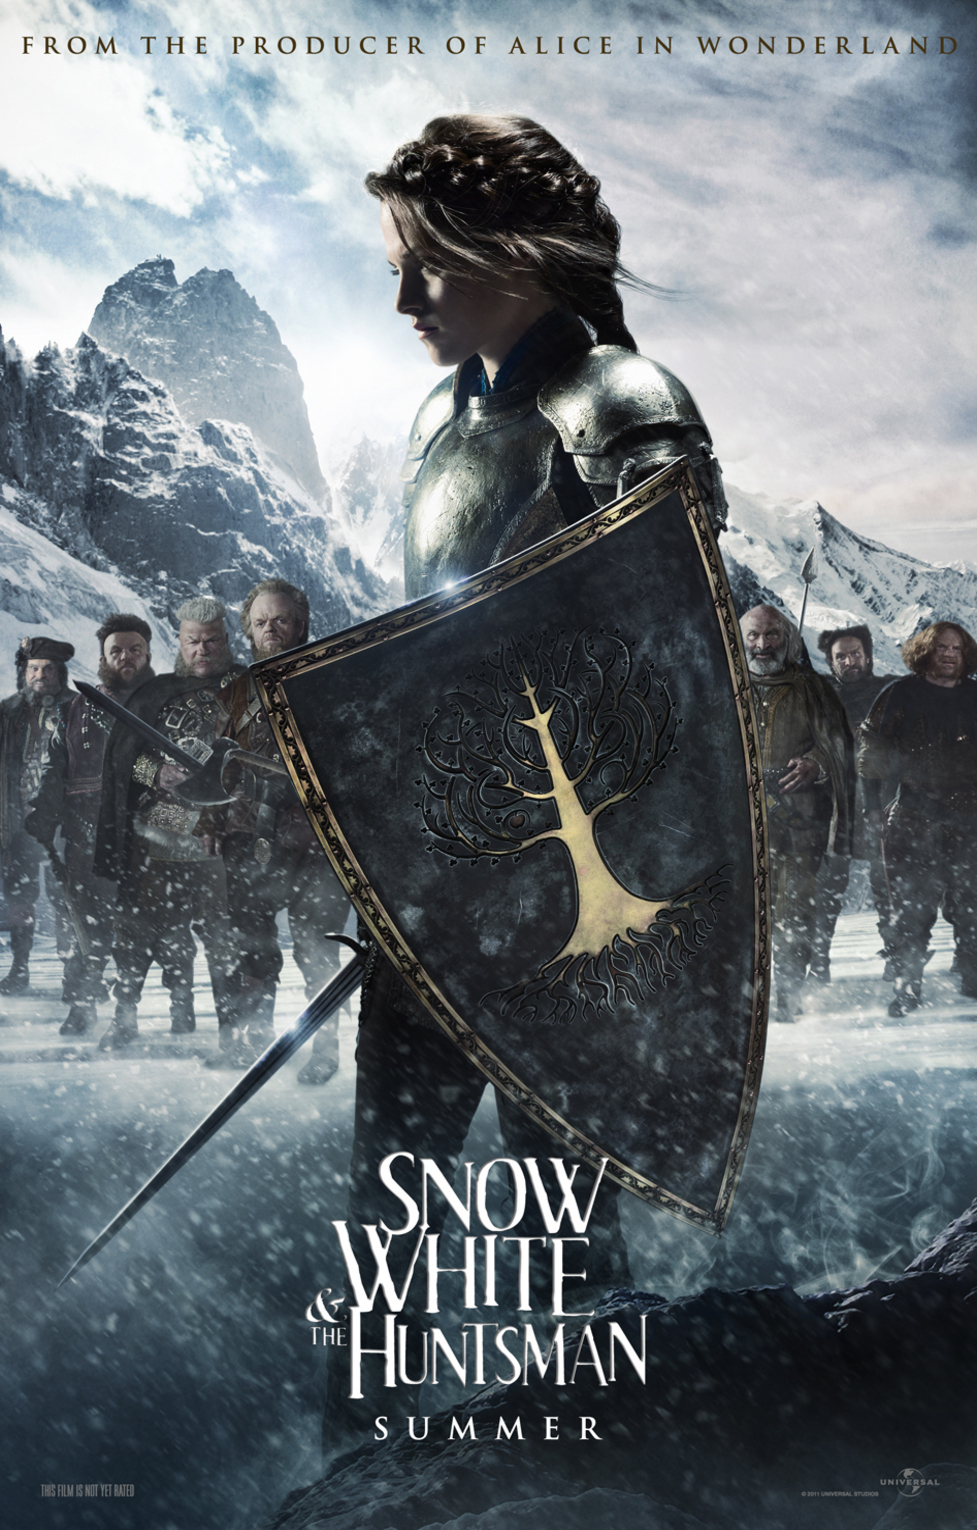 Snow White and the Huntsman - Movie Poster #1 (Original)